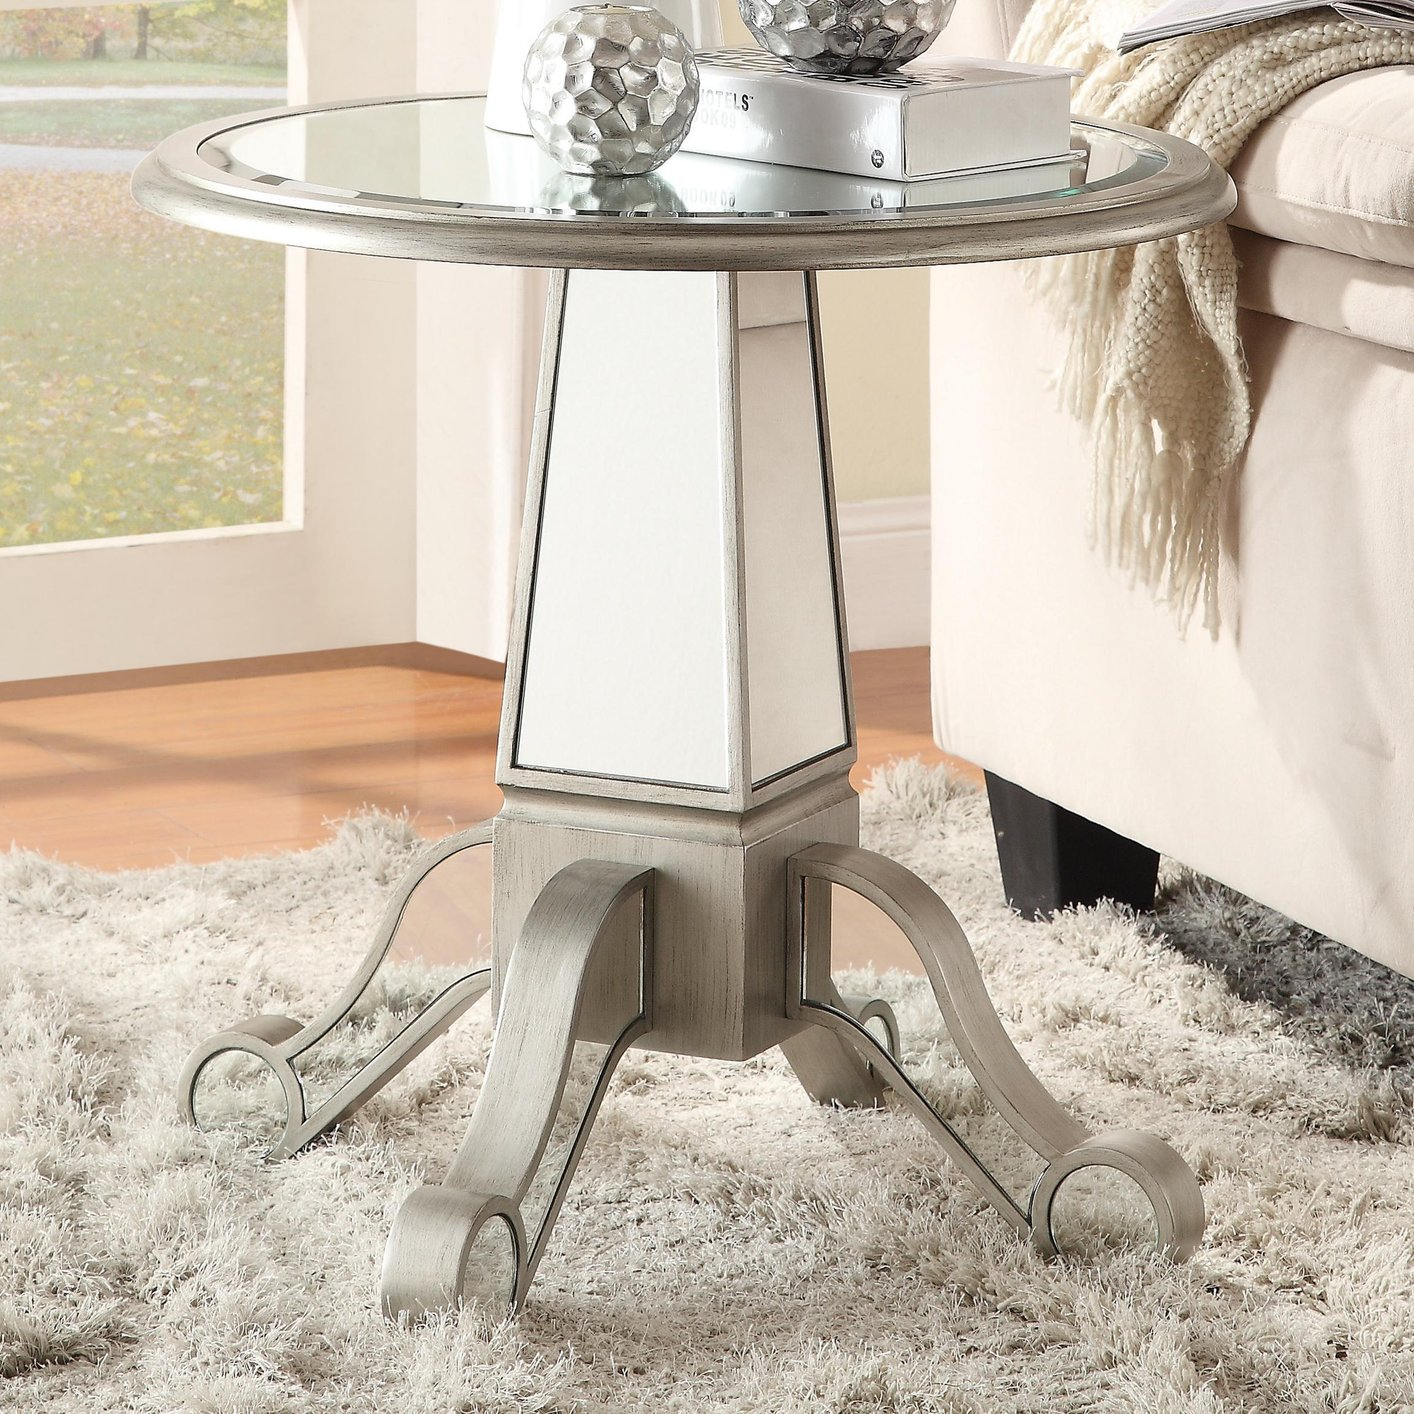 silver metal accent table steal sofa furniture los angeles glass curtain rods dining room wine rack behind entryway cabinet small leaf round mirror garage threshold seal ashley